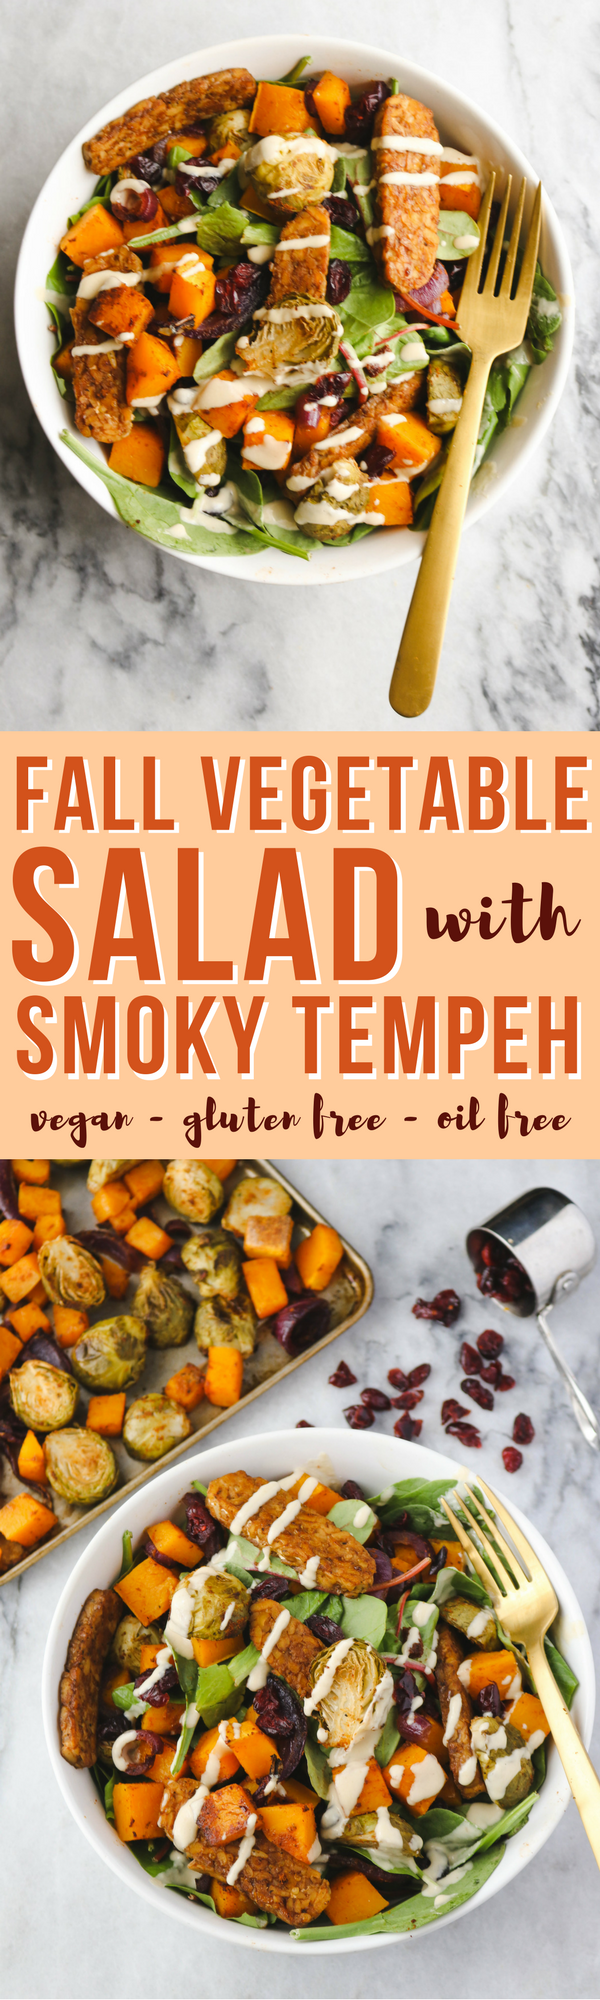 Fall Vegetable Salad with Smoky Tempeh - Easy Vegan & Gluten Free Recipe